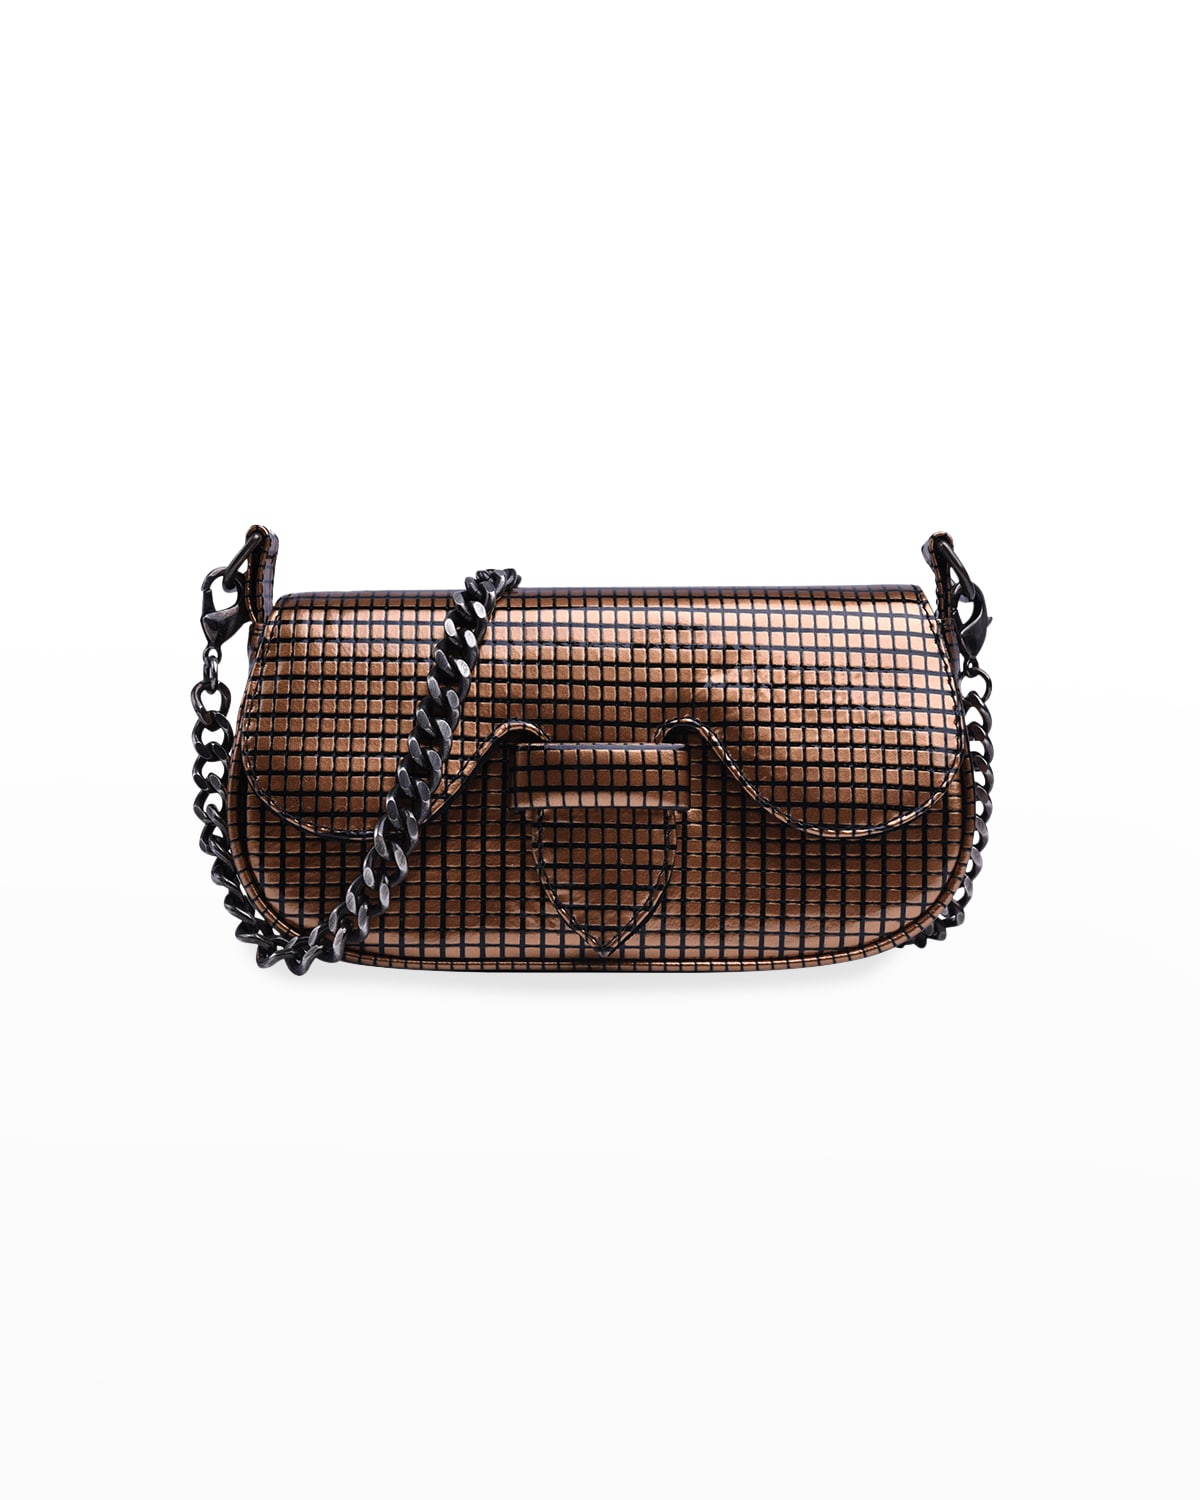 Alicia Grid Patent Leather Clutch Bag